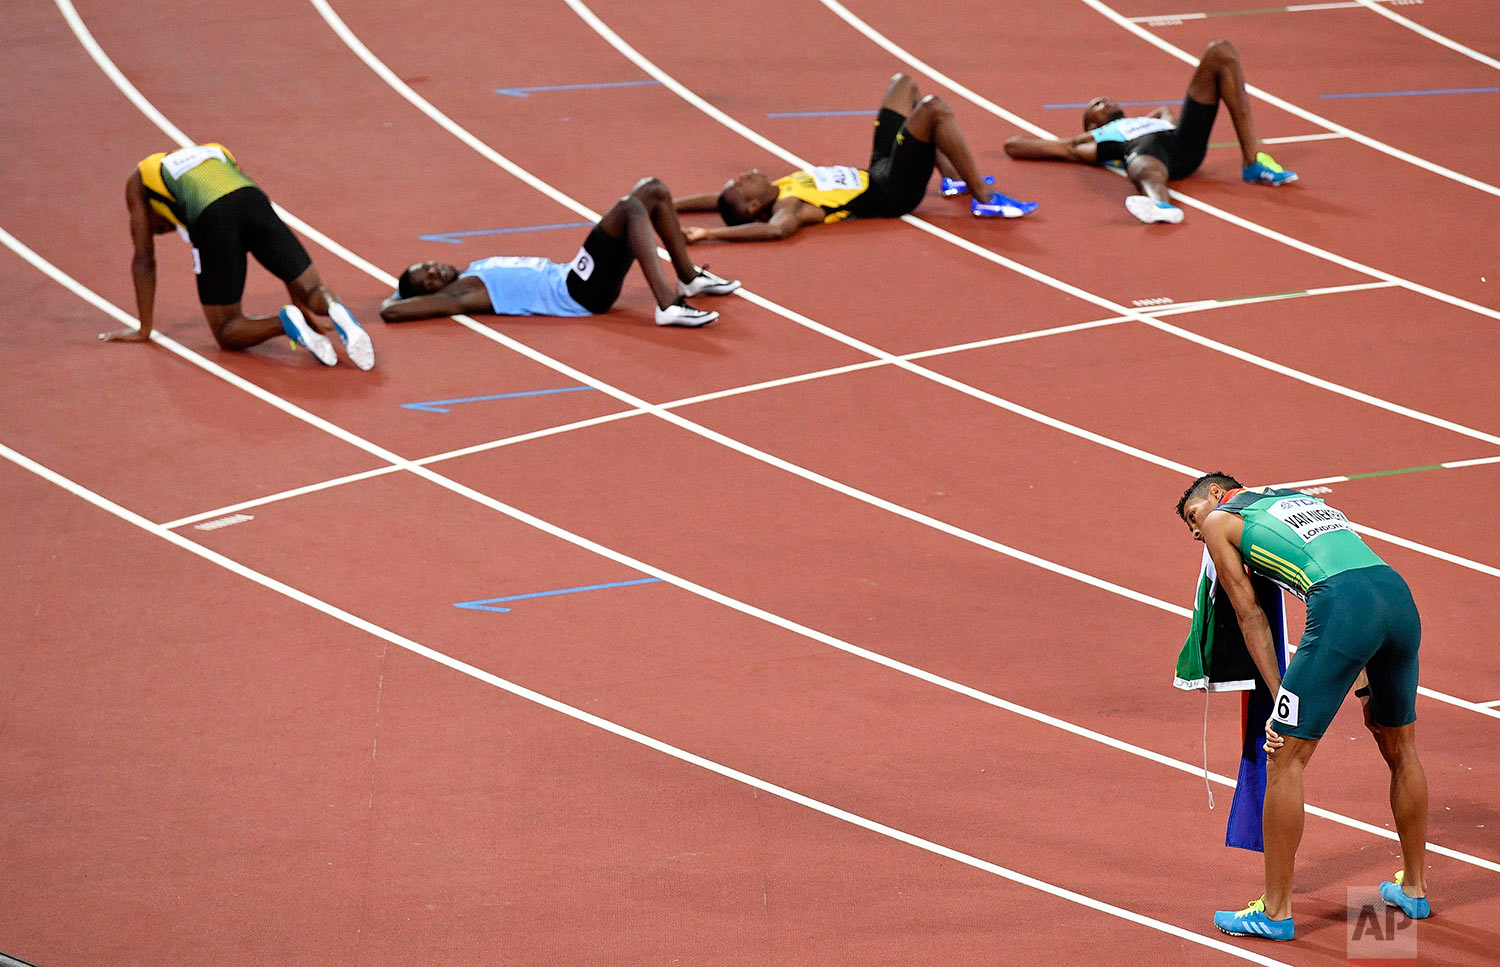 South Africa's Wayde Van Niekerk, right, rests after winning the Men's 400 meters final at the World Athletics Championships in London Tuesday, Aug. 8, 2017. (AP Photo/Martin Meissner)